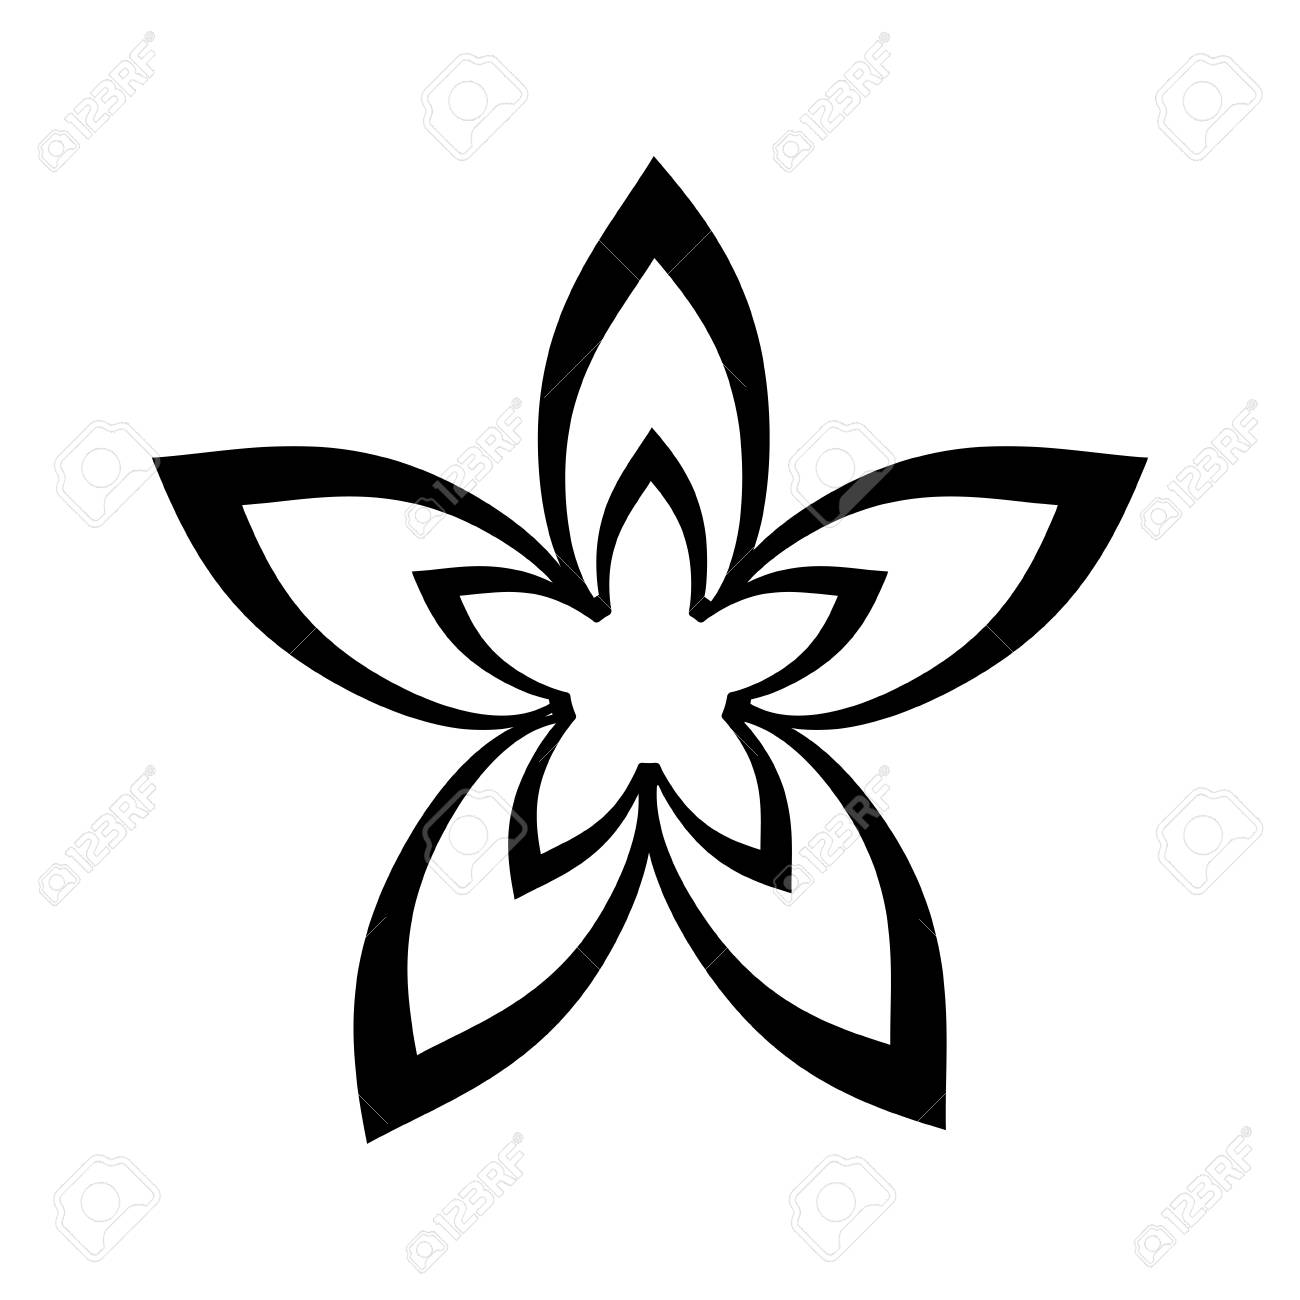 Small Delicate Flowers Paint Image Vector Illustration Draw Royalty